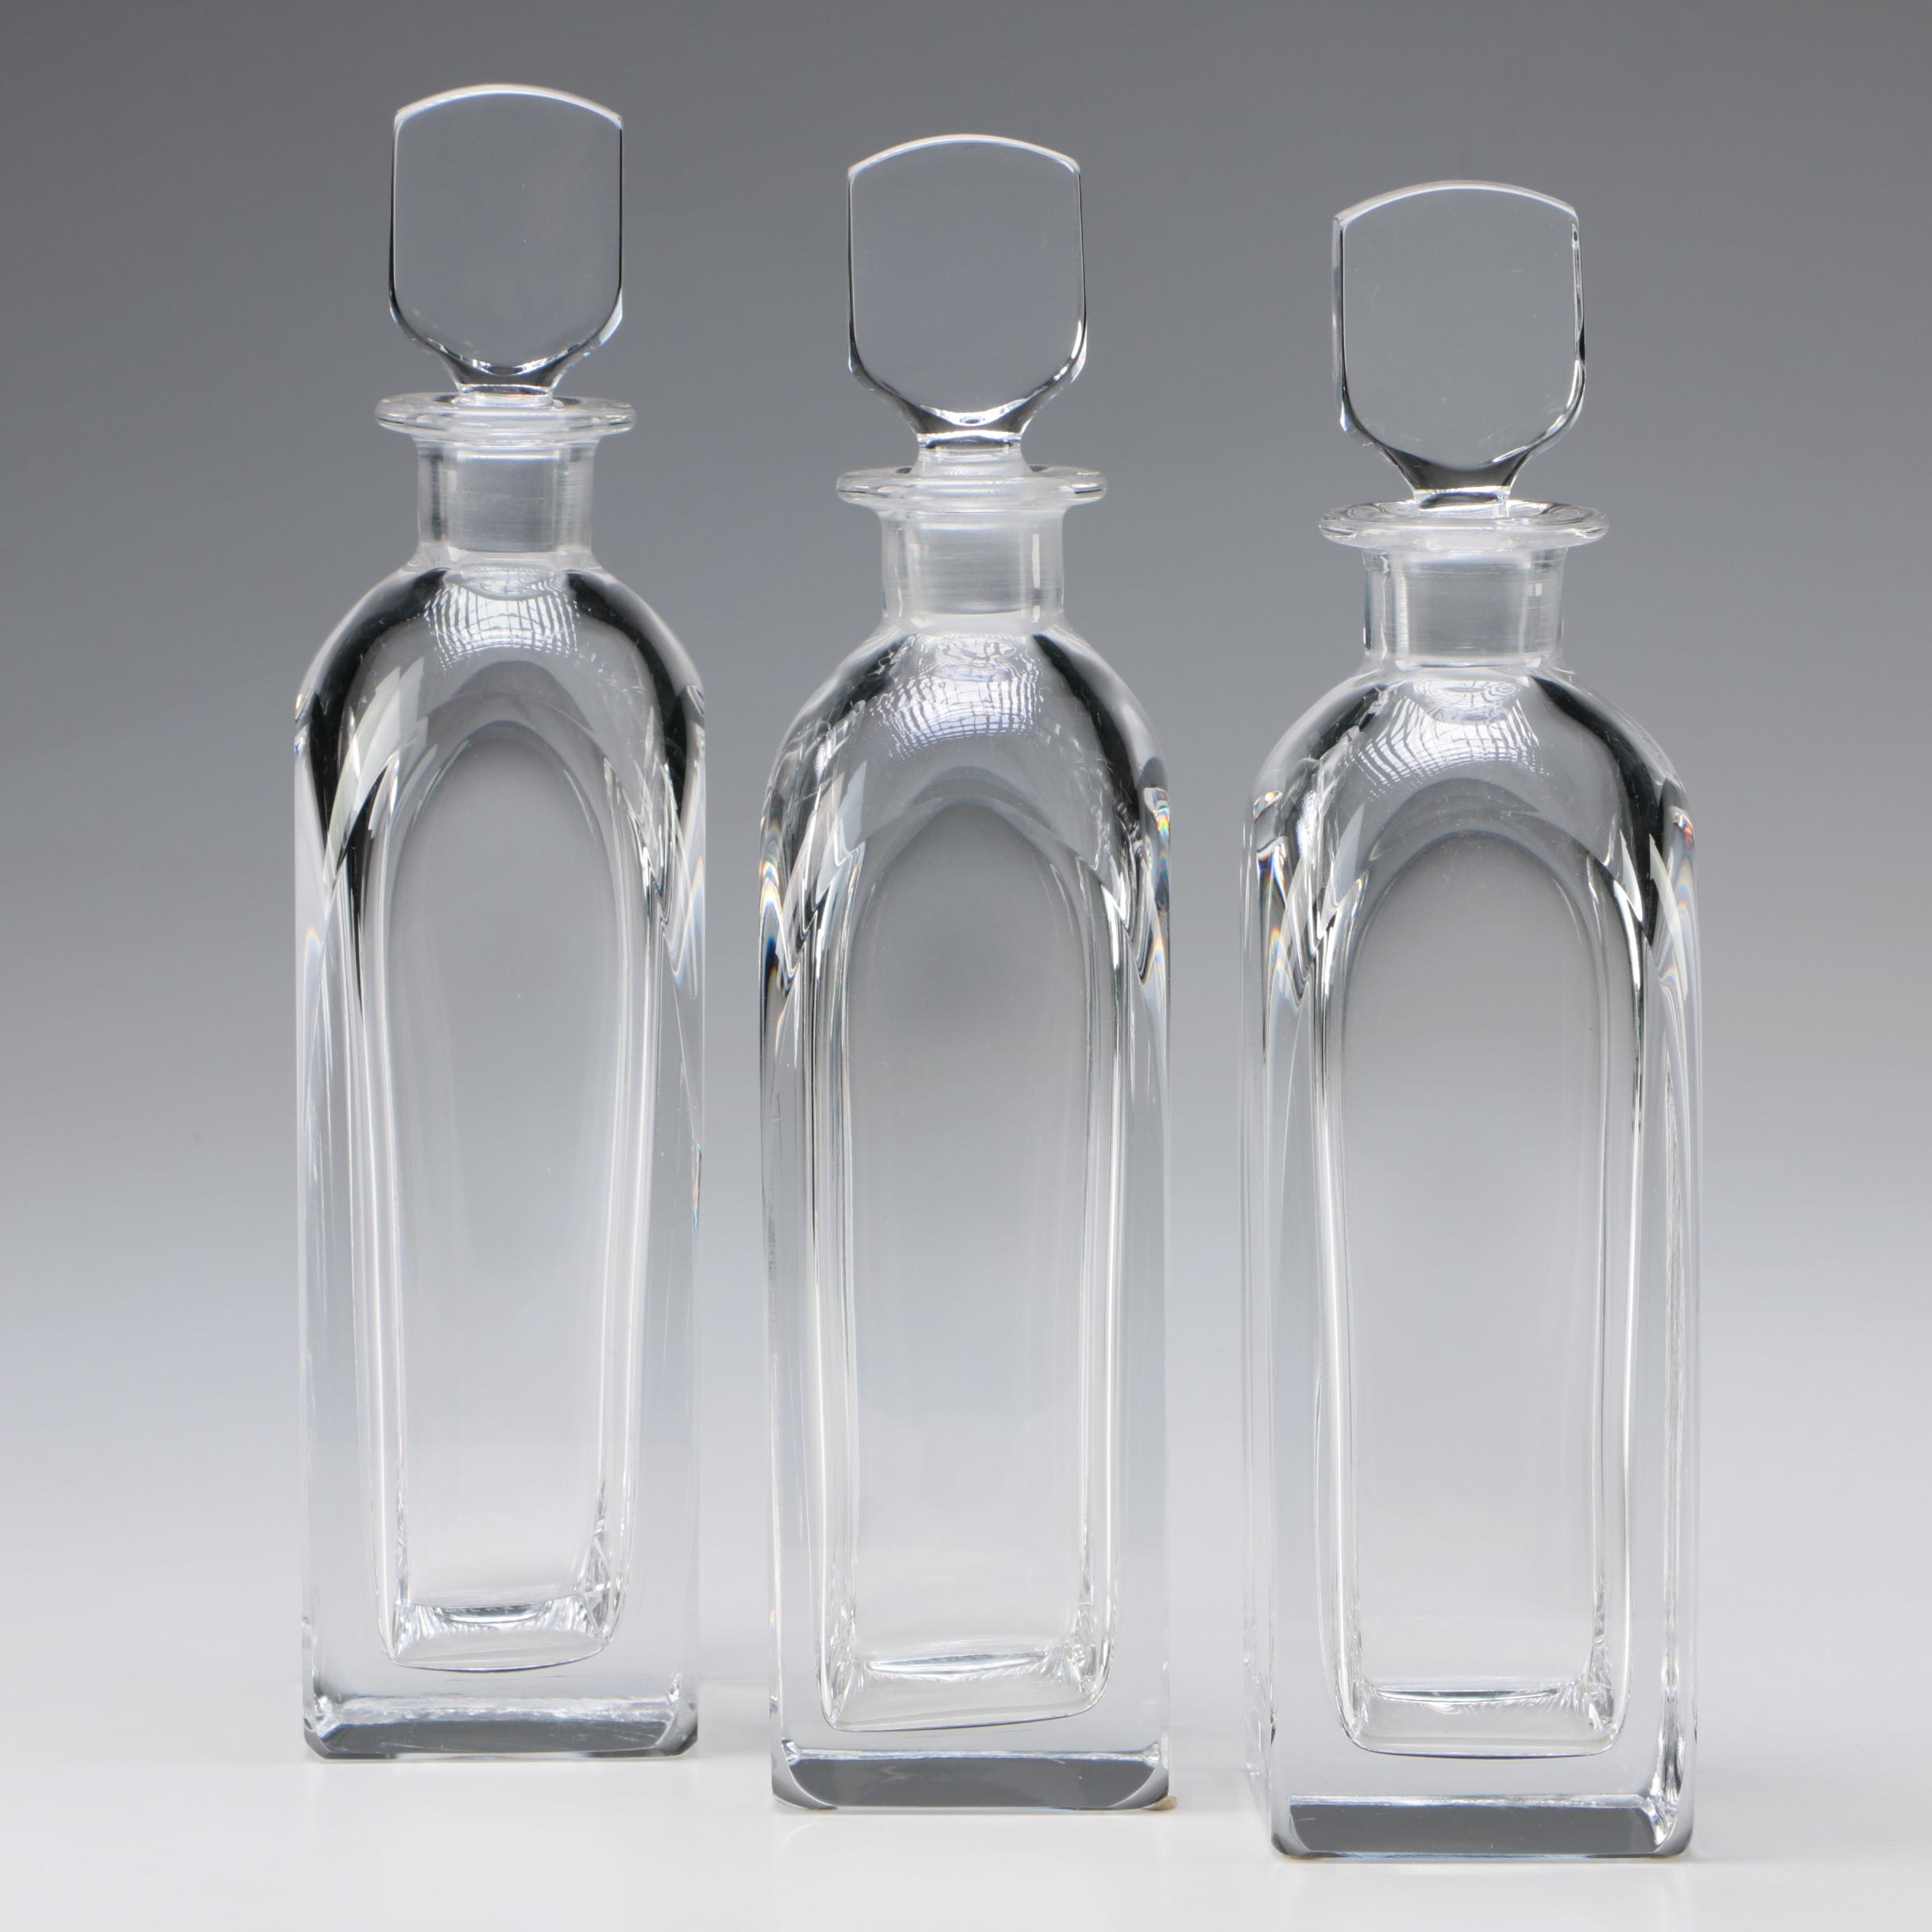 Orrefors Art Glass Decanters by Edvard Hald